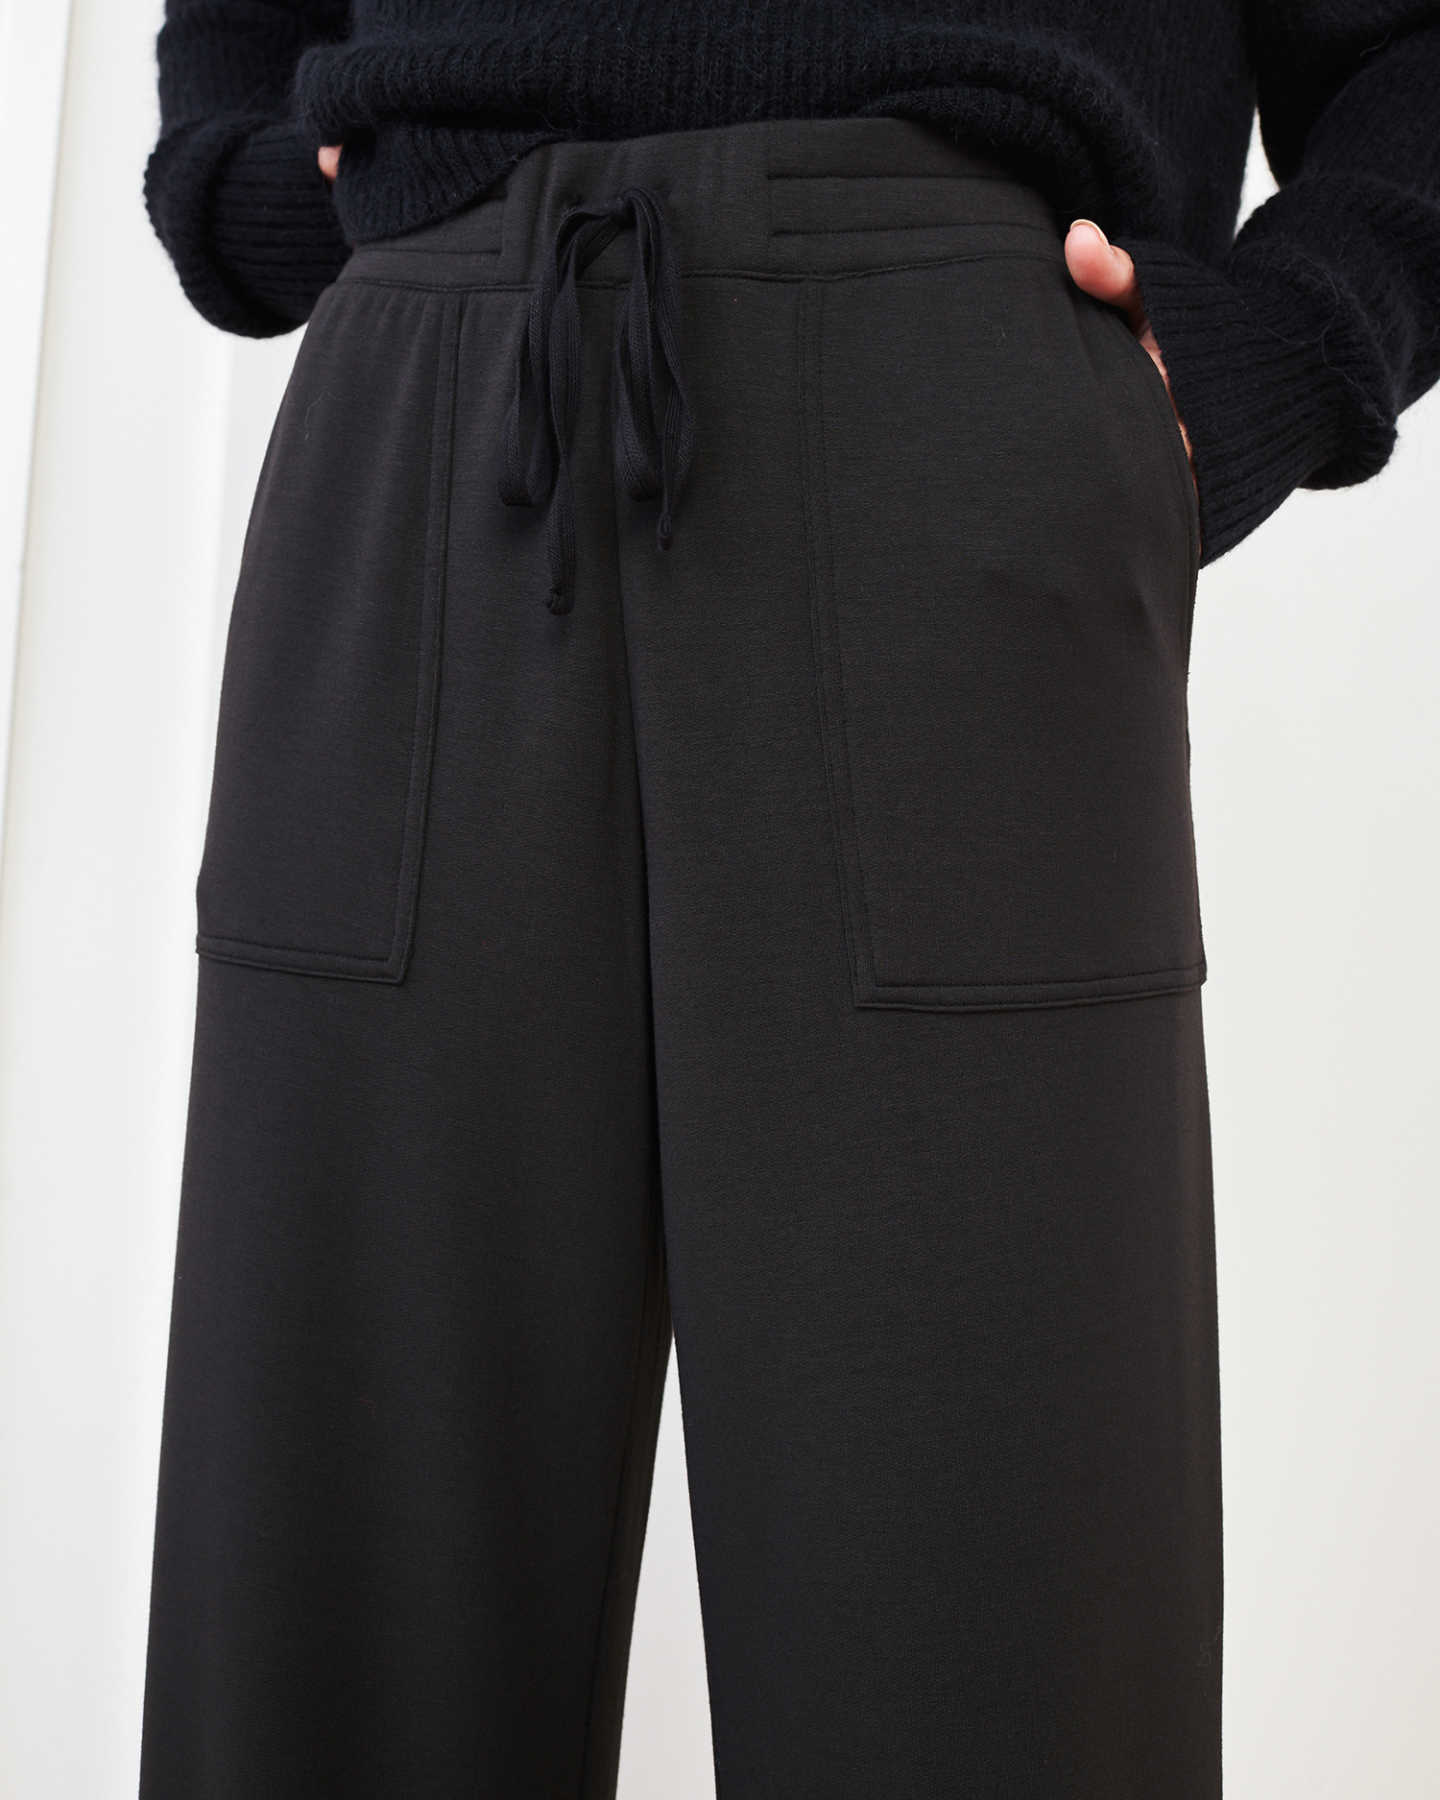 SuperSoft Fleece Wide Leg Pants - Black - 1